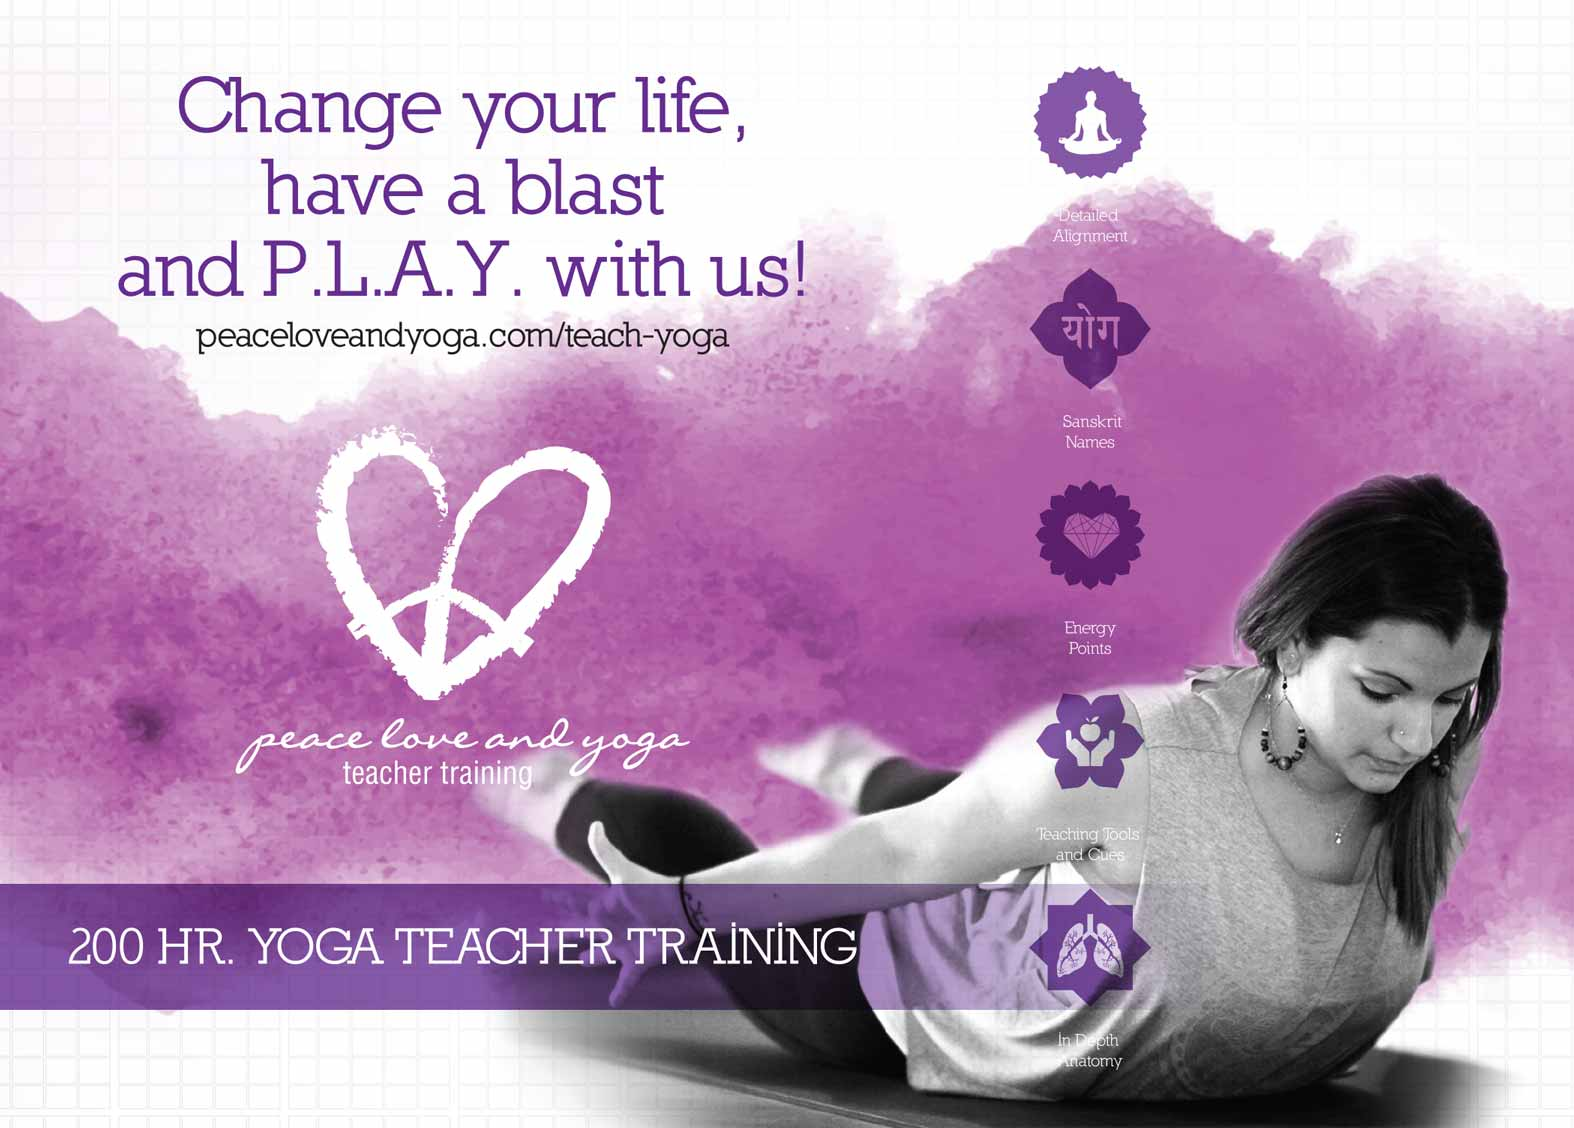 The New 200 Hour Teacher Training Program Had Such A Vast Amount Of Information Ranging From Energy Points To In Depth Anatomy